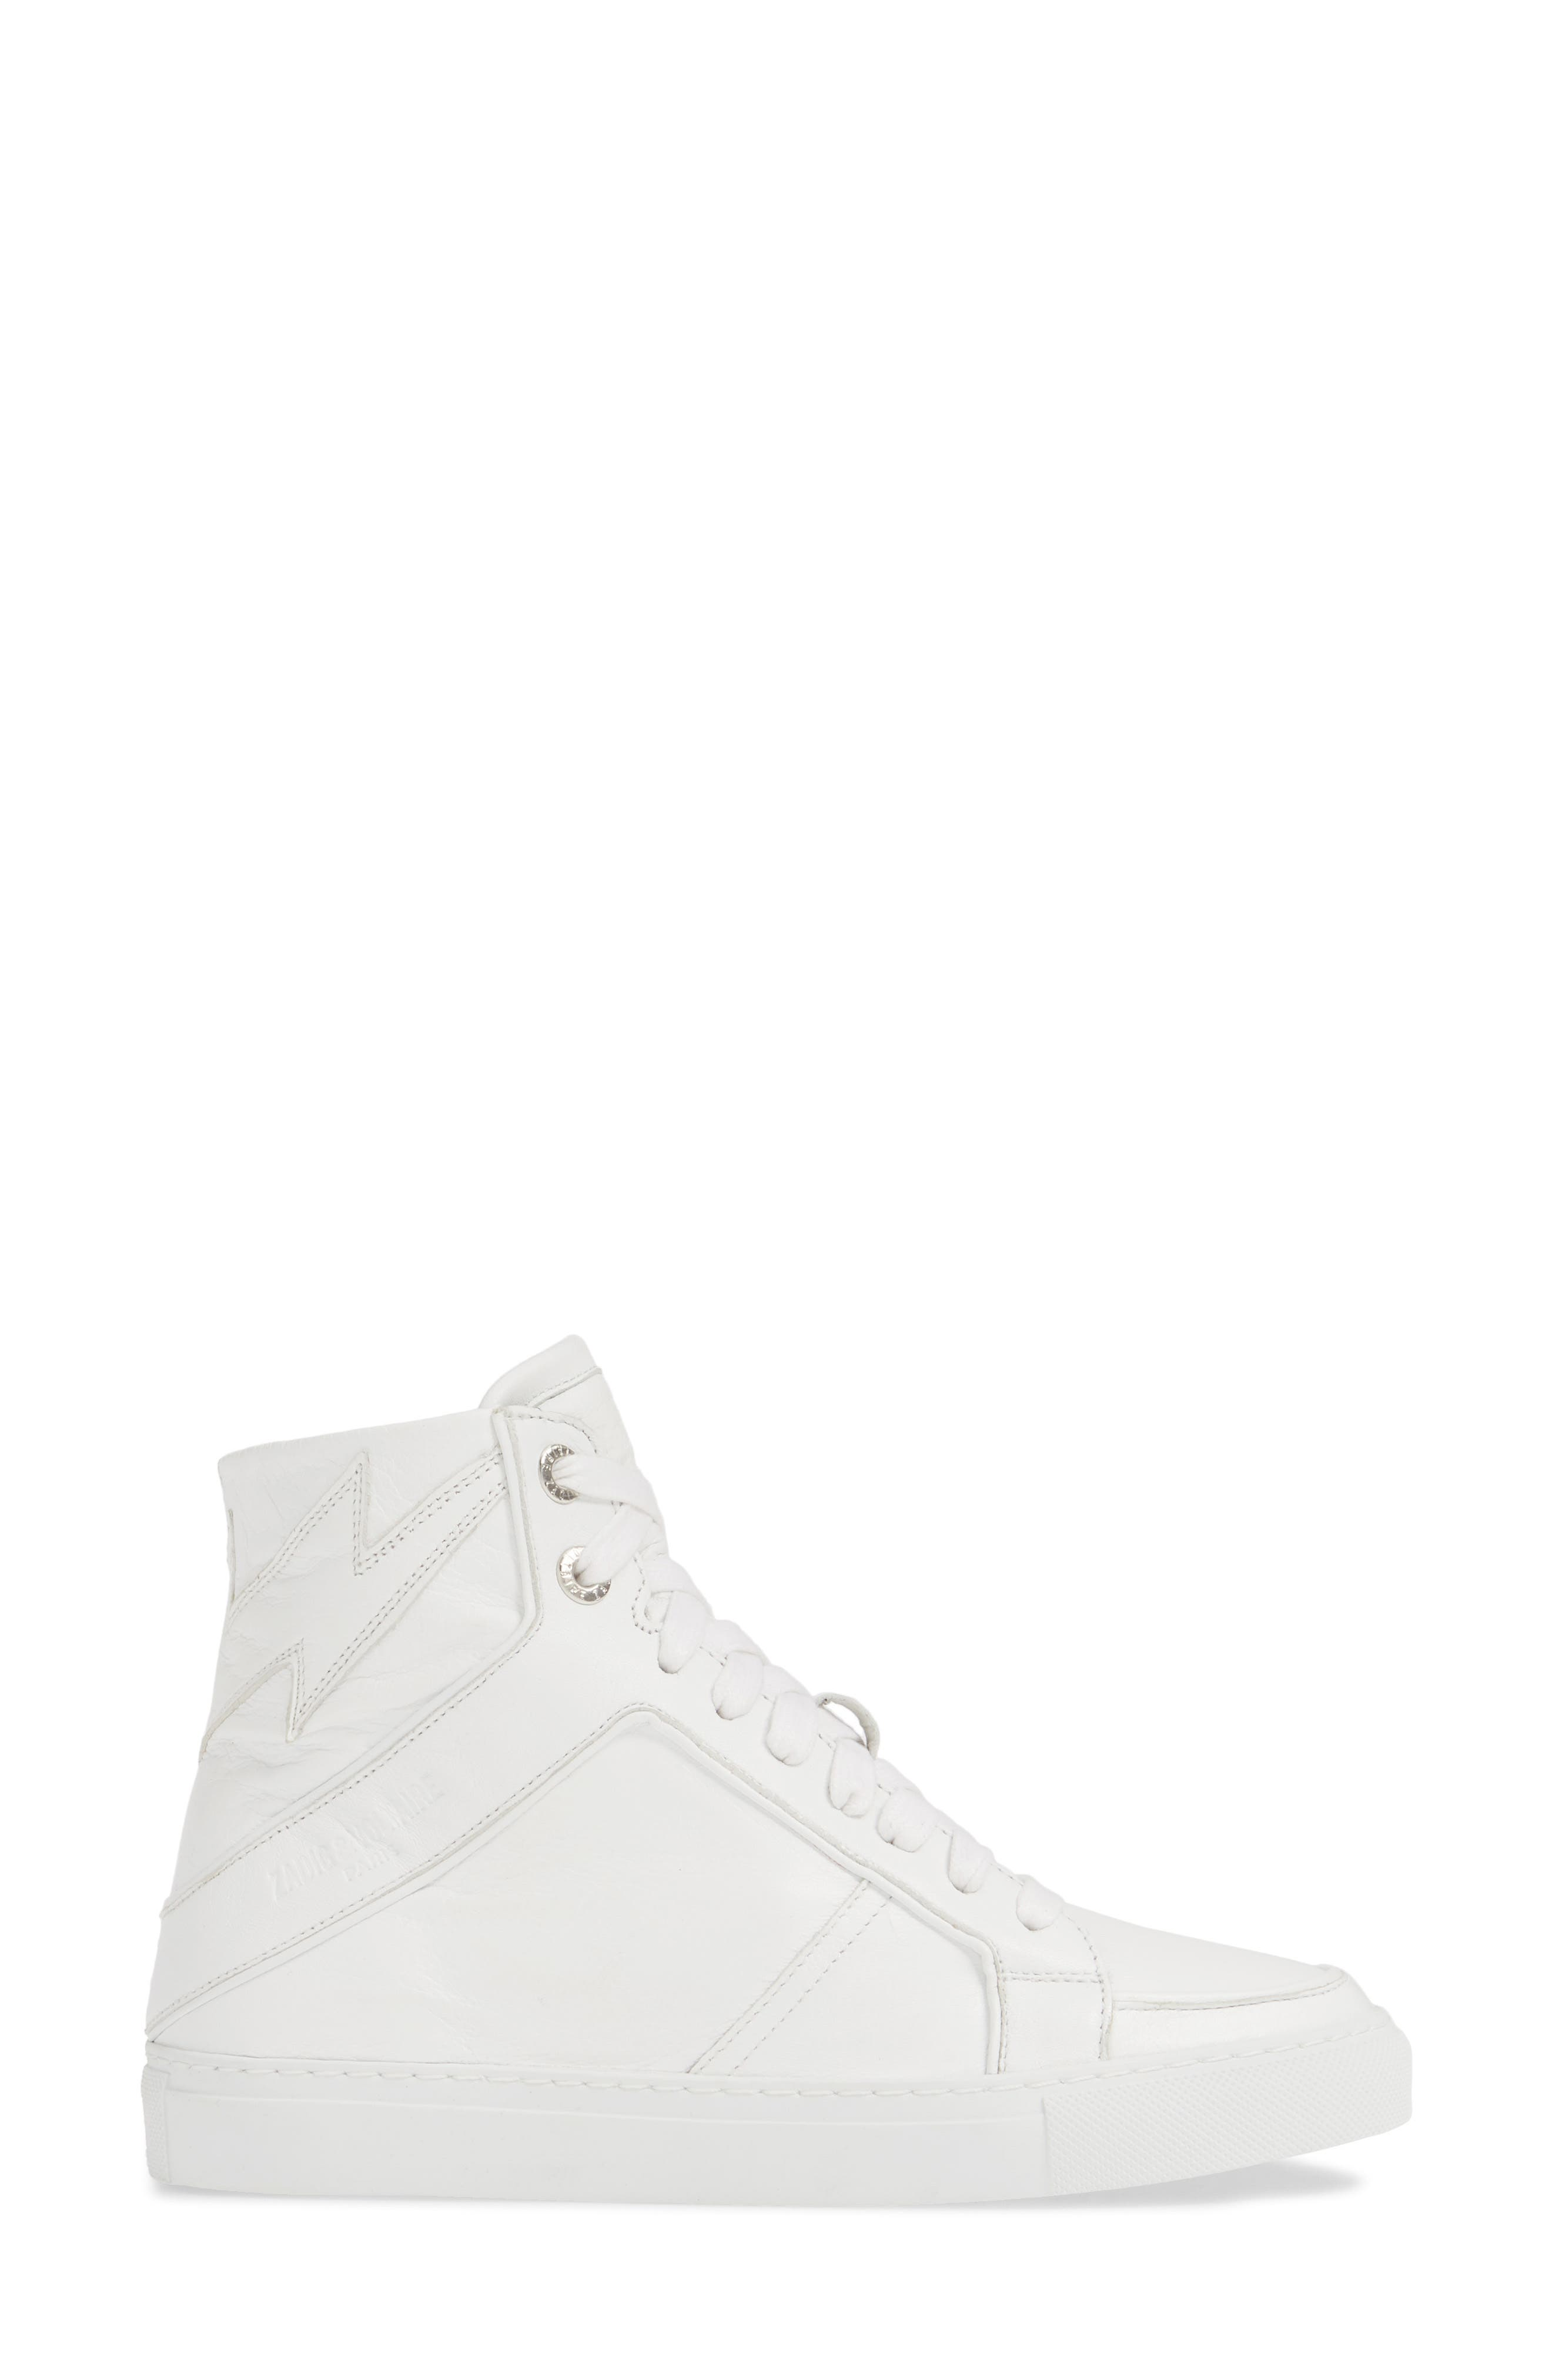 ZADIG & VOLTAIRE, Flash High Top Sneaker, Alternate thumbnail 3, color, BLANC